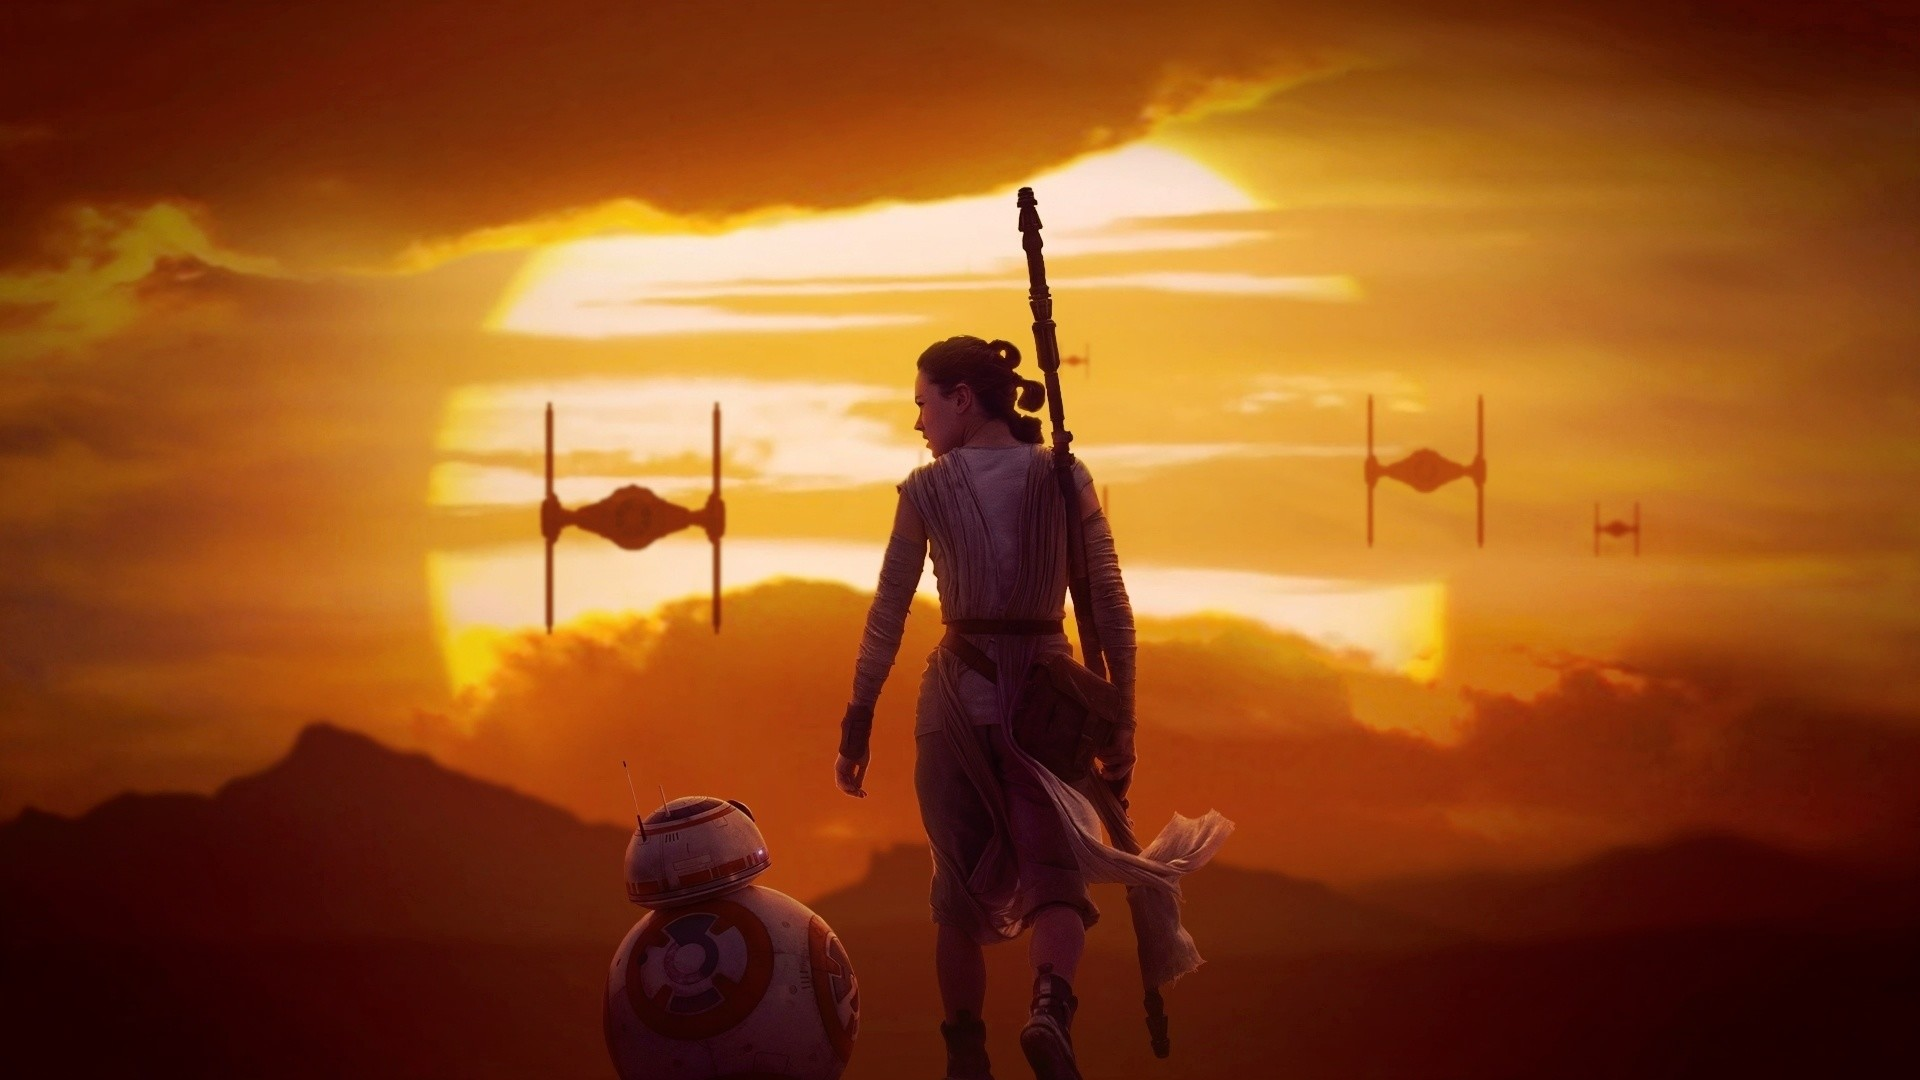 1920x1080 Rey & BB-8 at Sunset - Star Wars 7: The Force Awakens